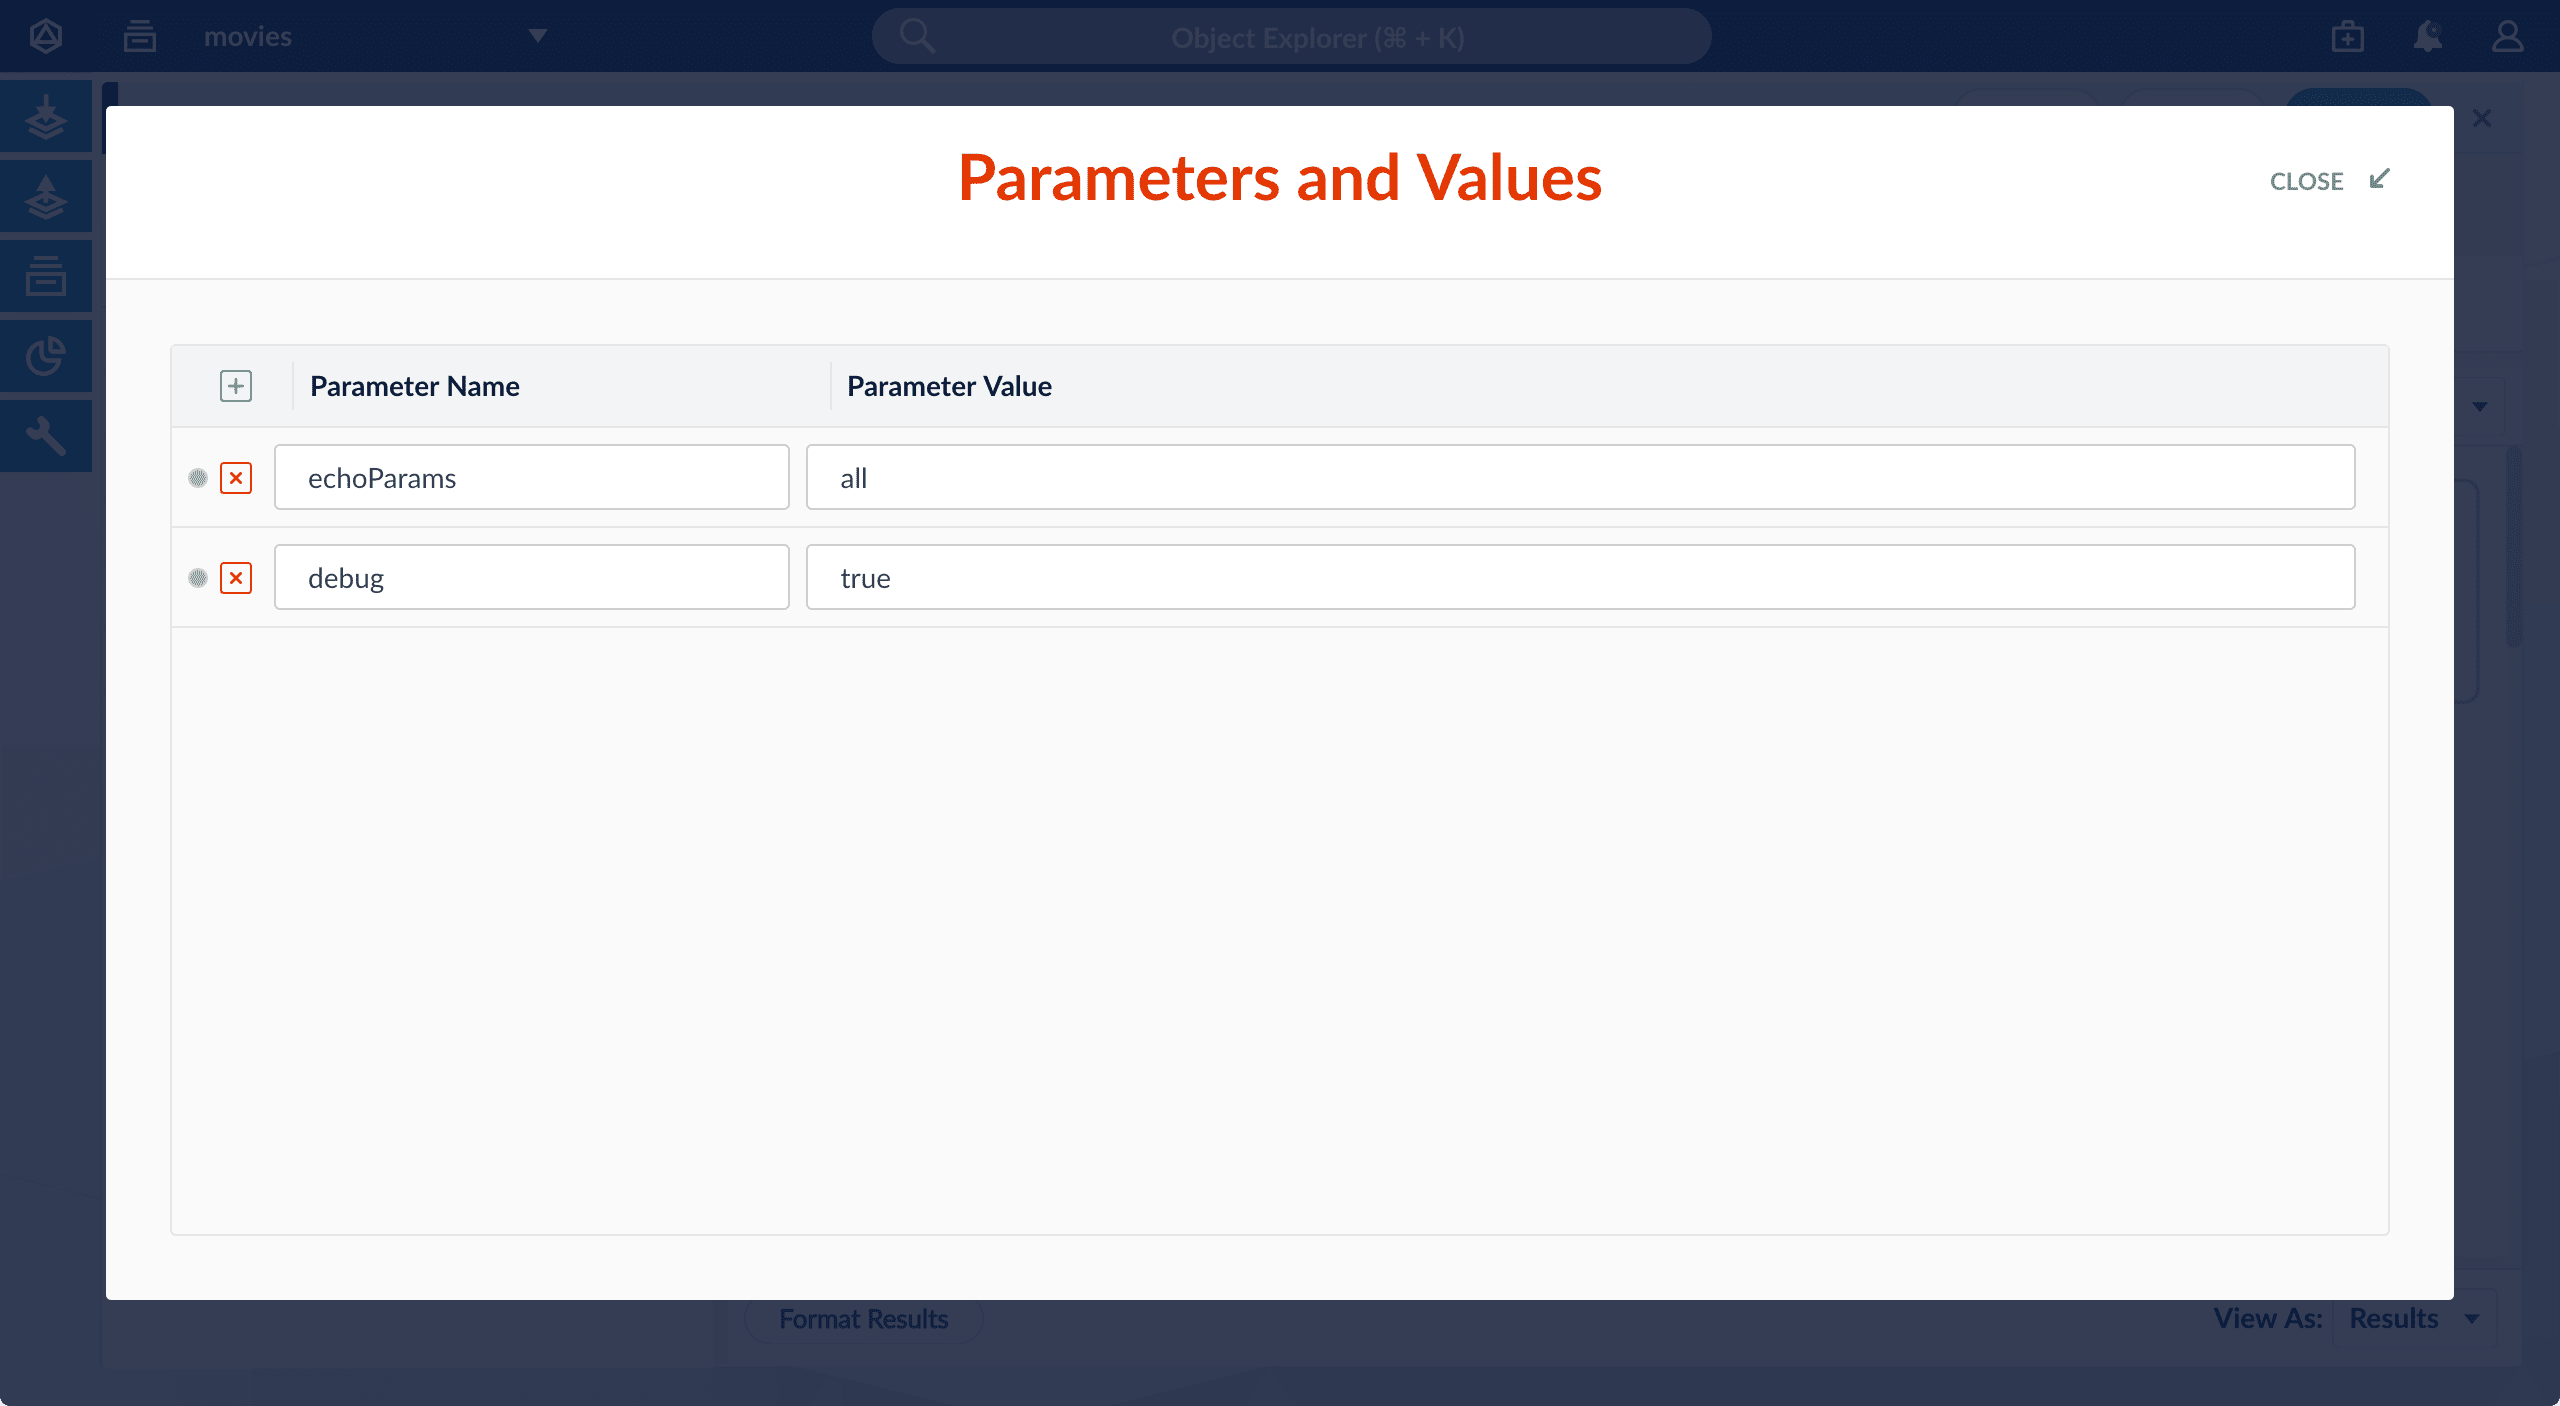 Parameters and Values